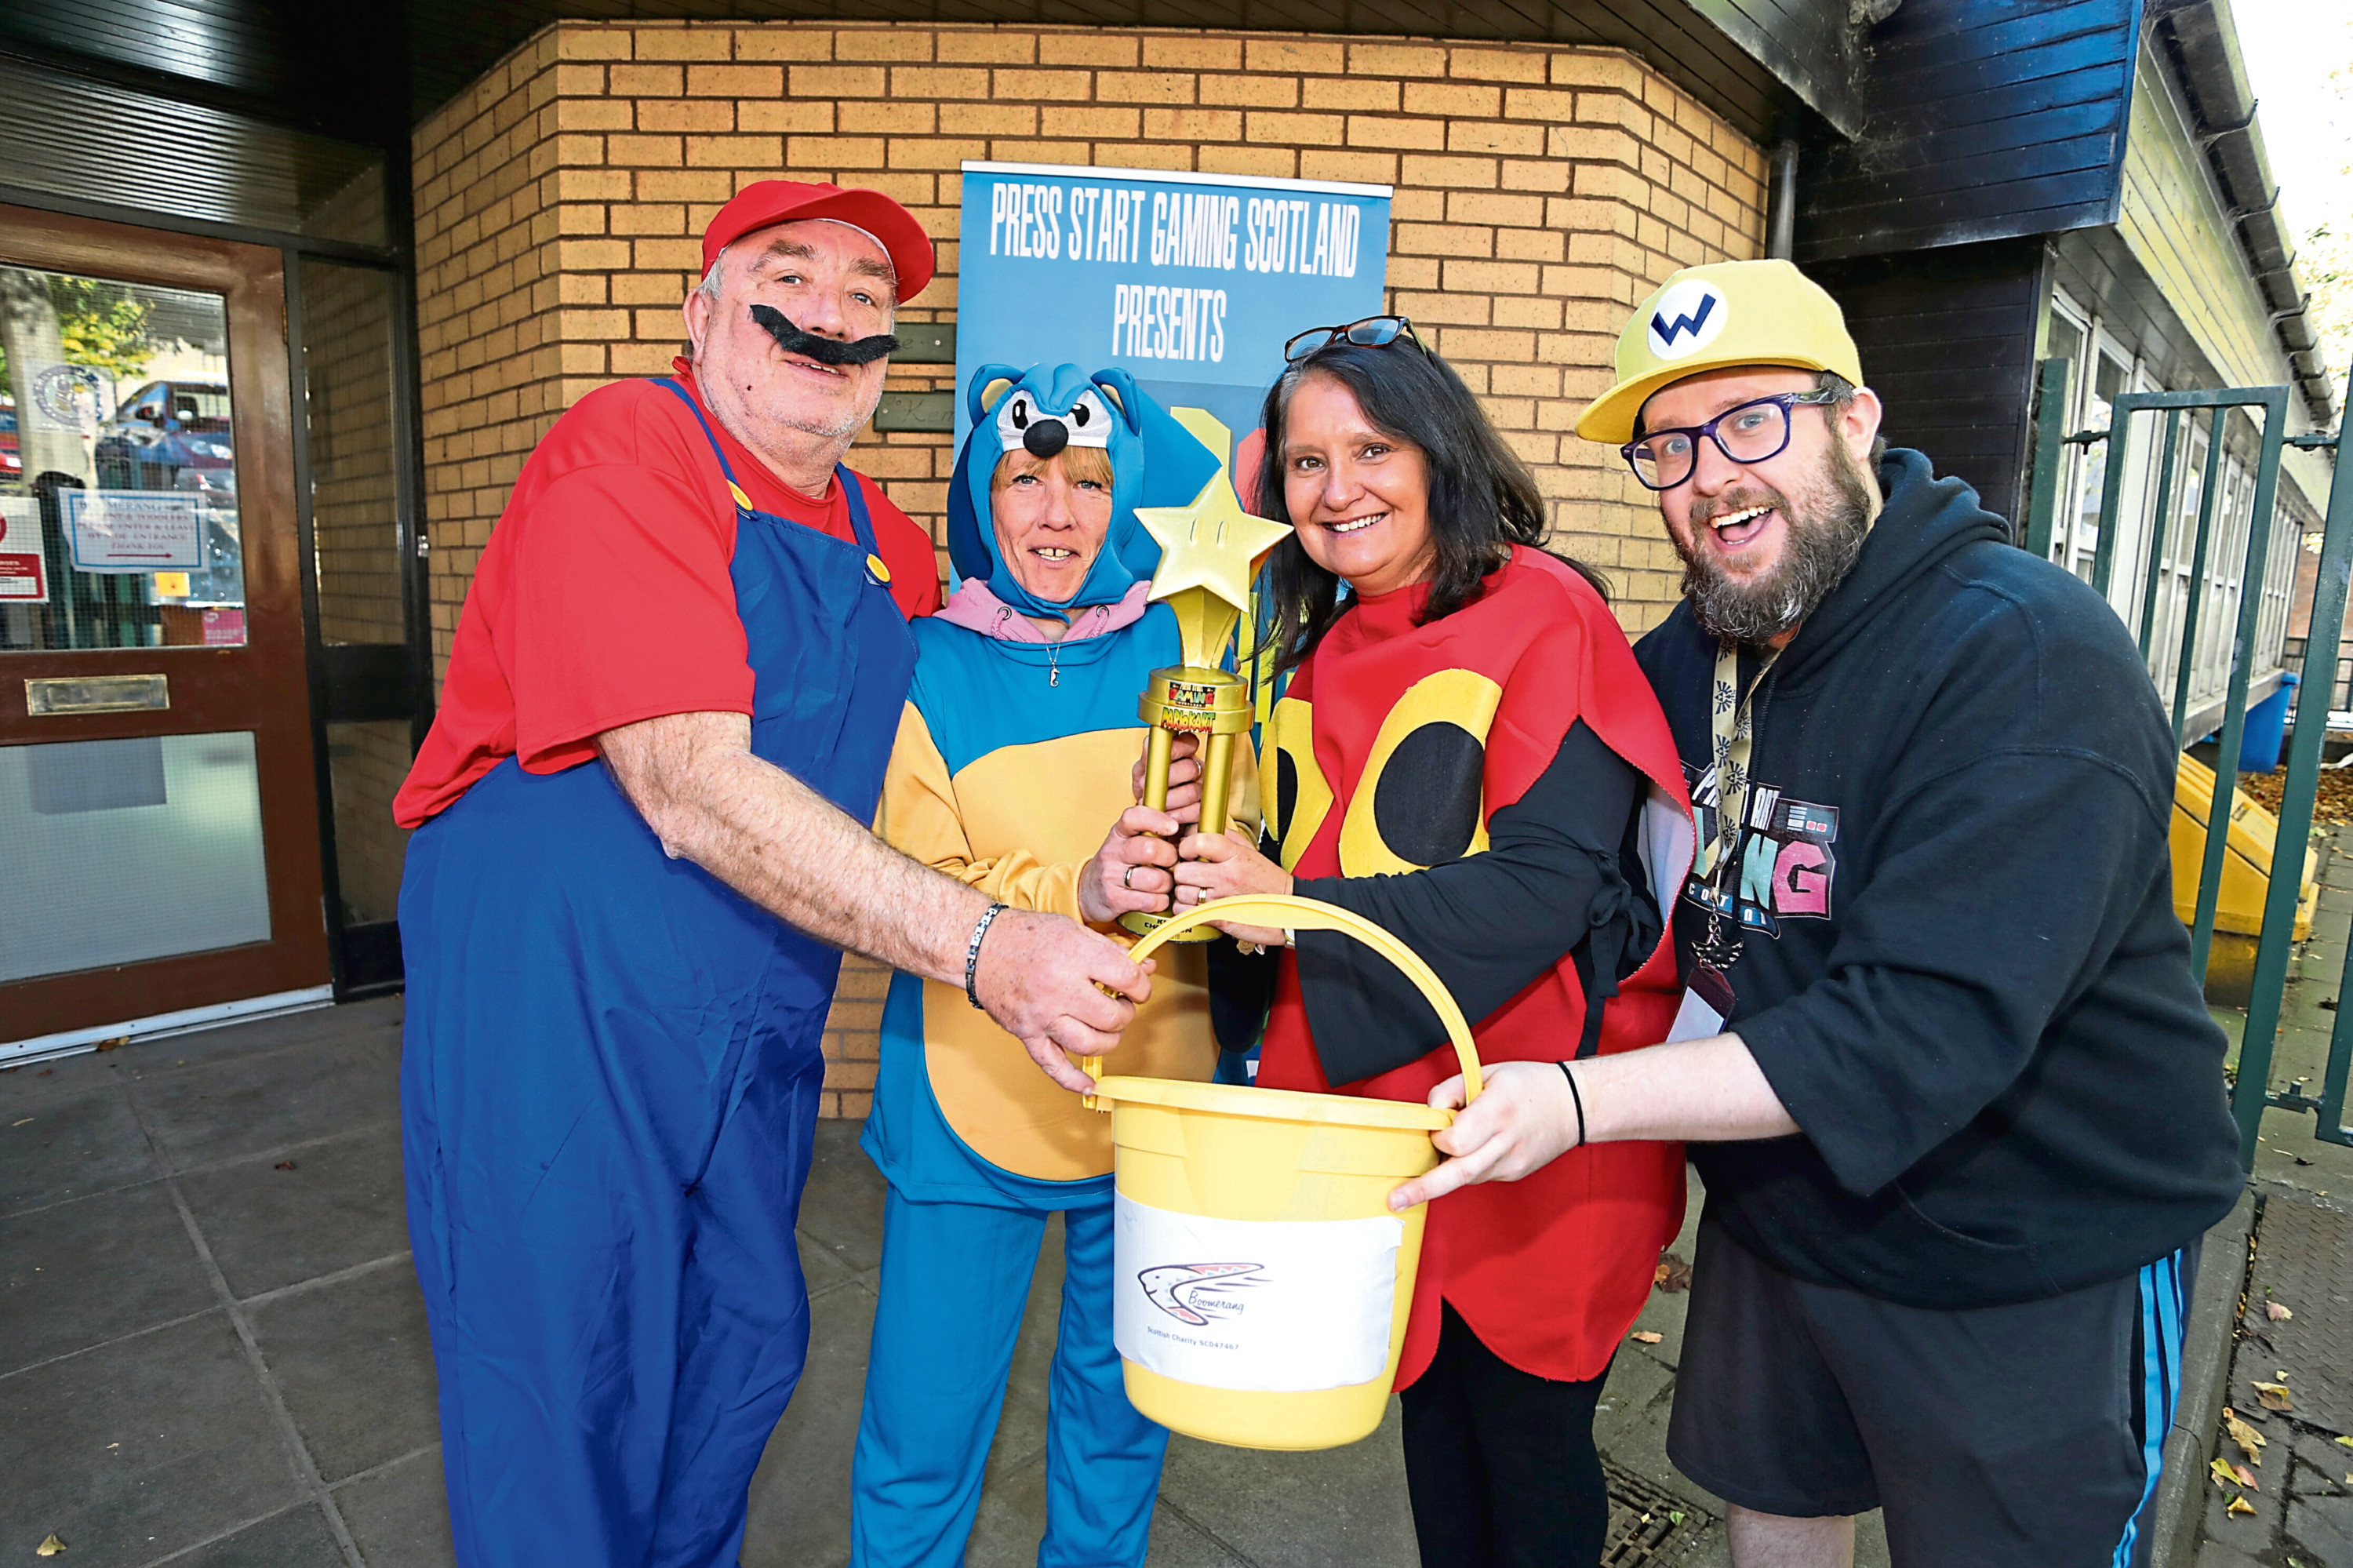 From left, Boomerang centre manager Neil Ellis, Lynne Christie, Alison Carr and event organiser Kevin Purdie.